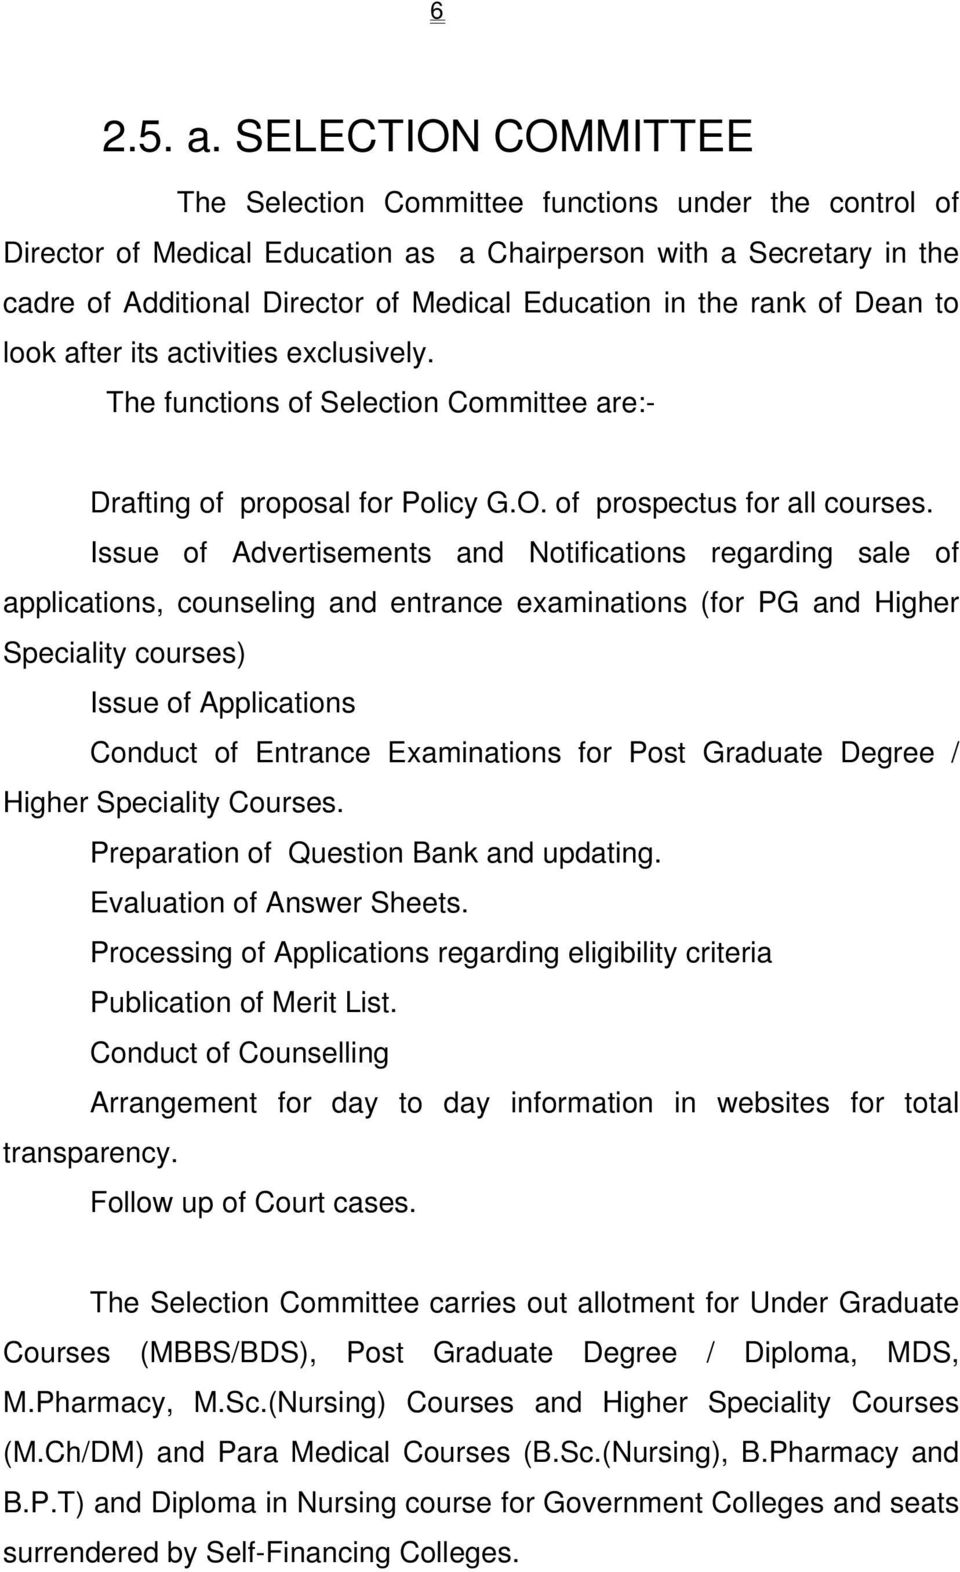 the rank of Dean to look after its activities exclusively. The functions of Selection Committee are:- Drafting of proposal for Policy G.O. of prospectus for all courses.